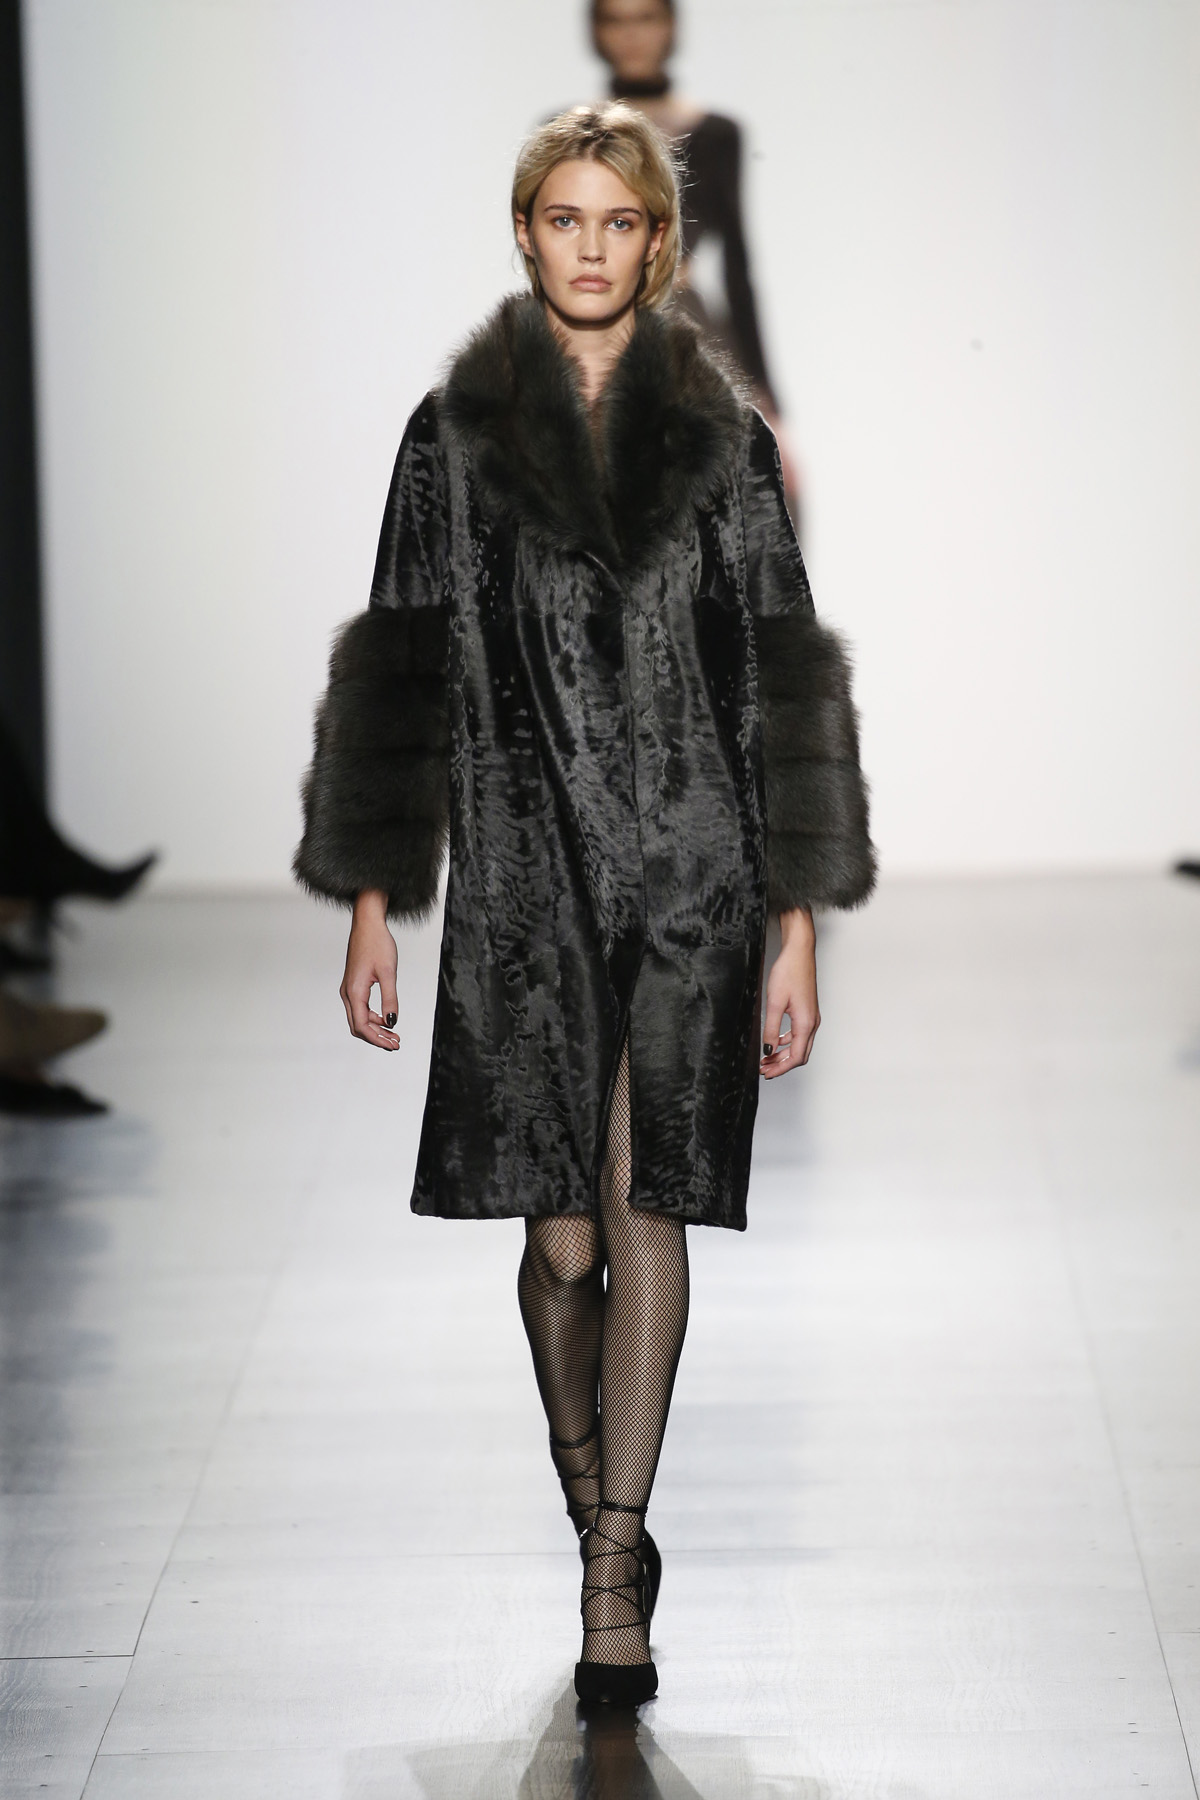 FW17 DENNIS BASSO NEW YORK FASHION WEEK